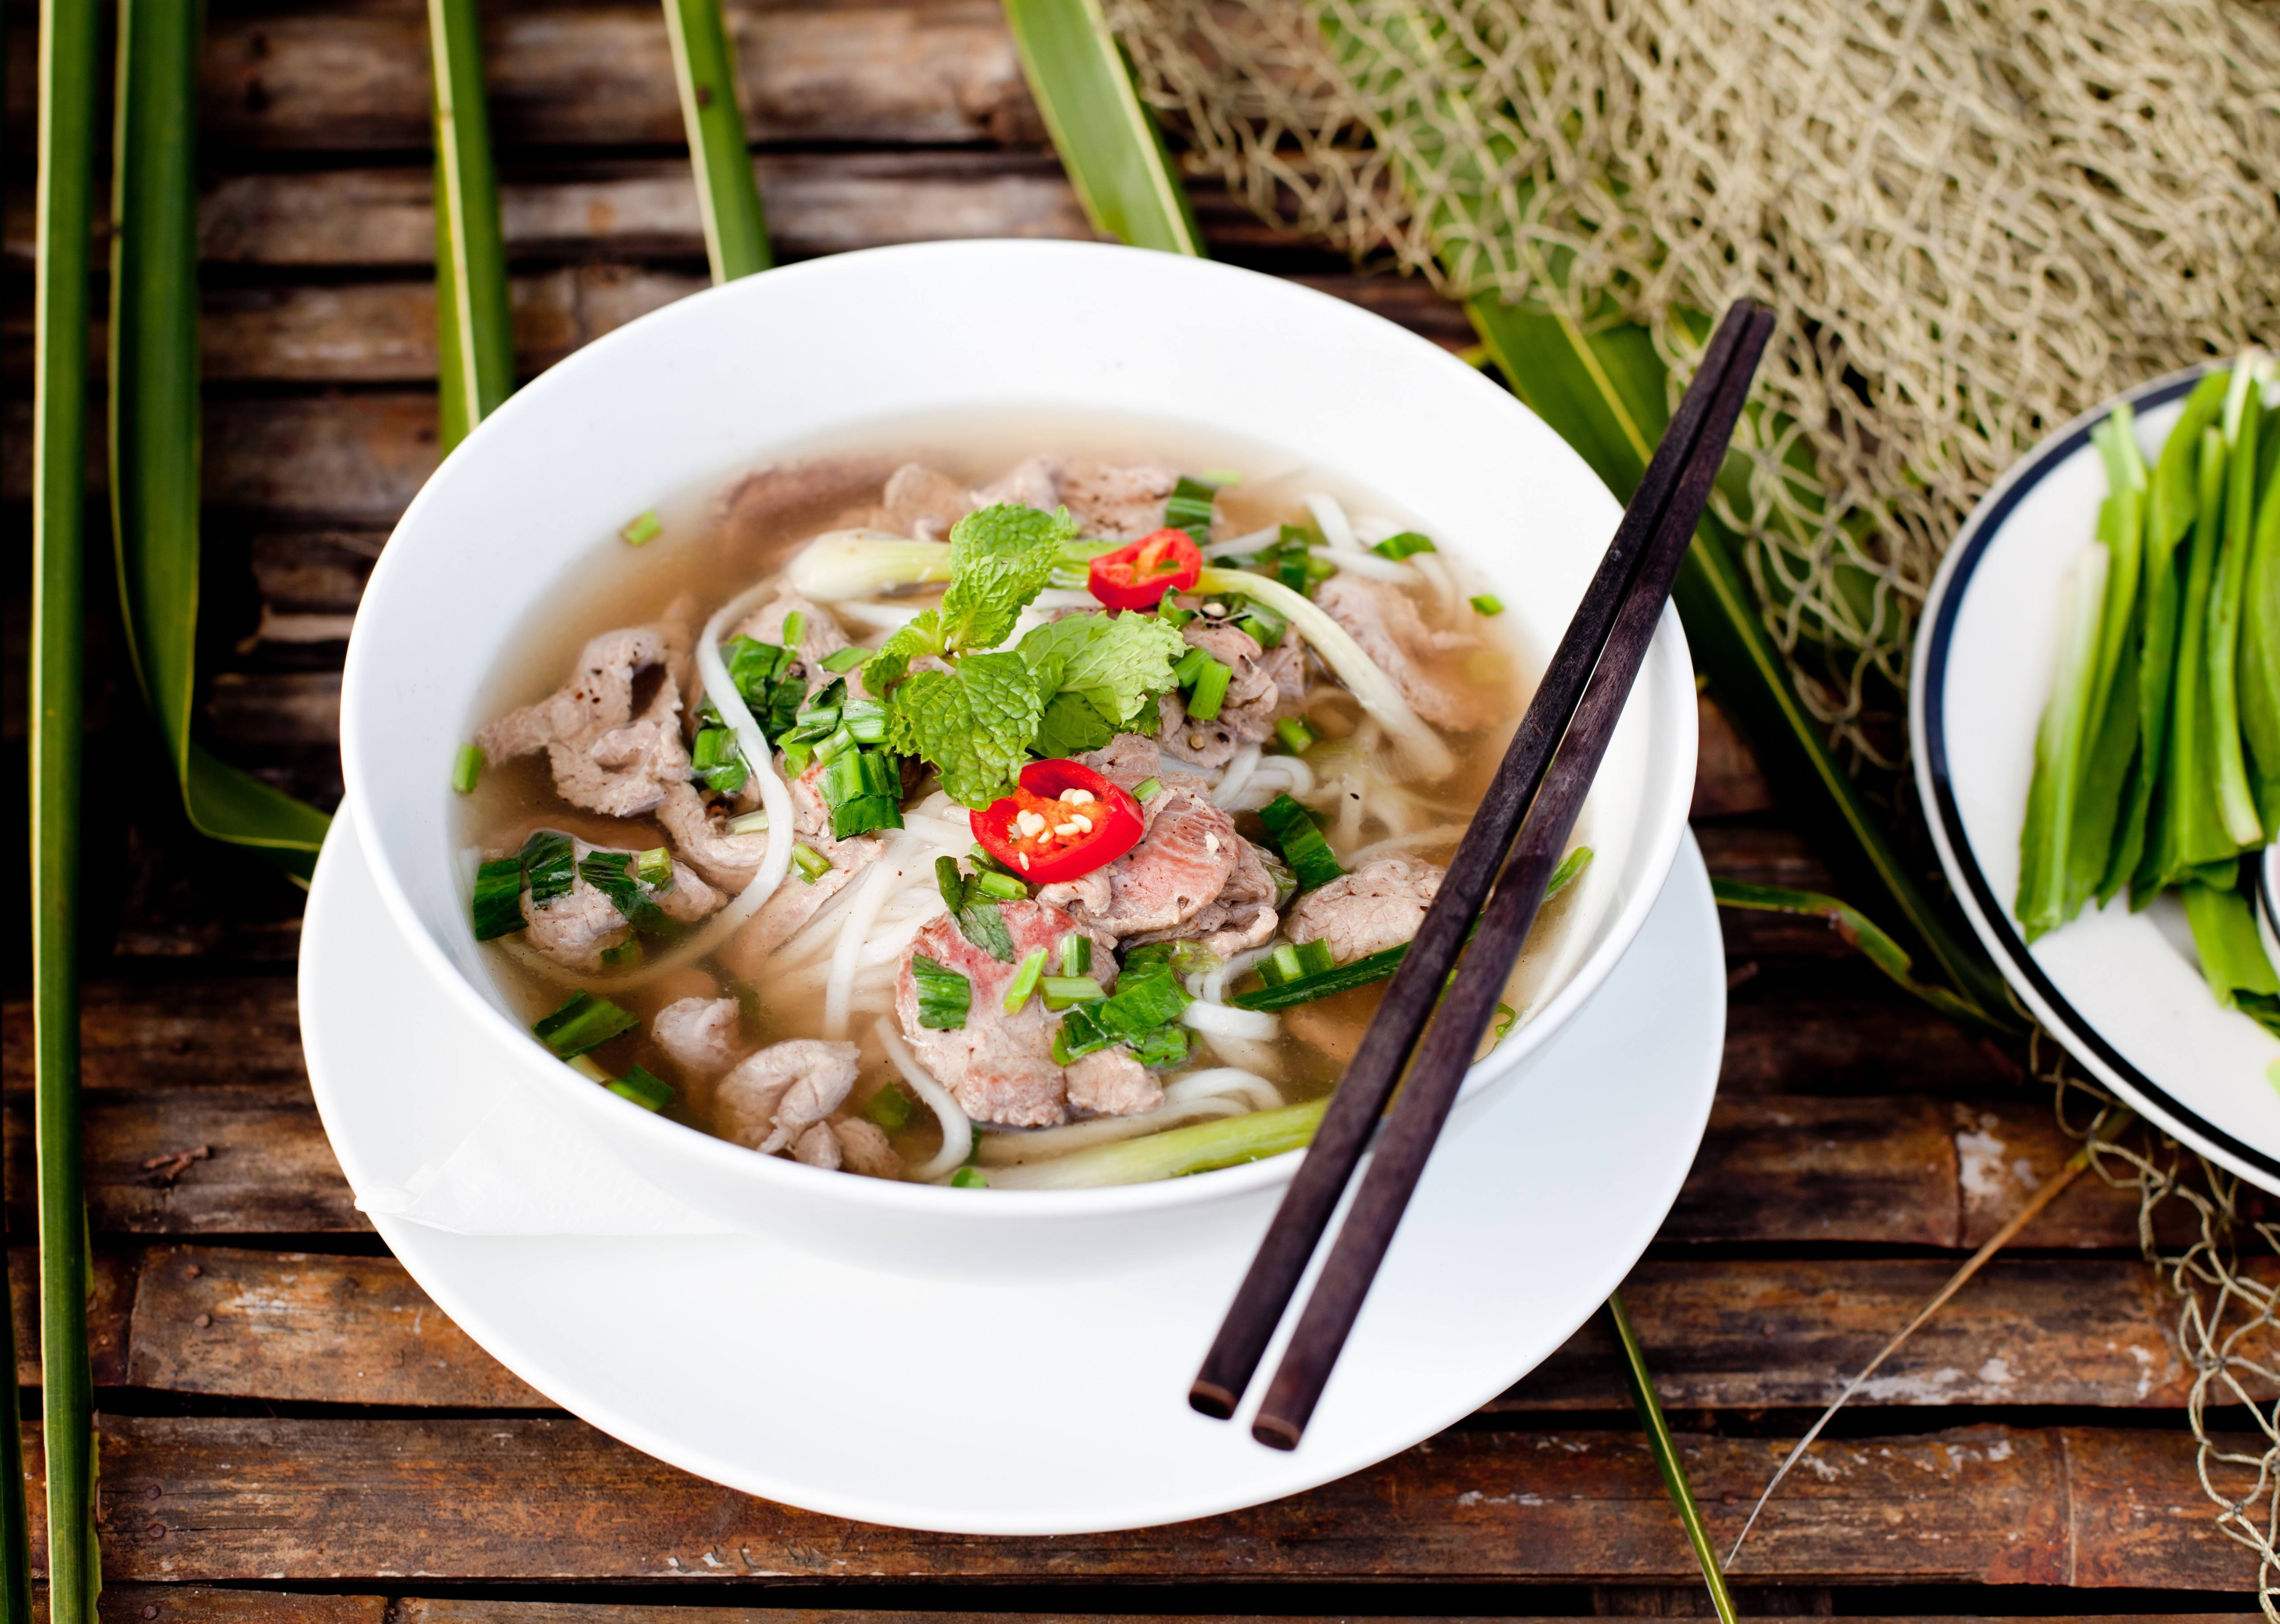 Things to do in Vietnam - Sample Vietnamese Pho in Hanoi - Top 10 food destinations